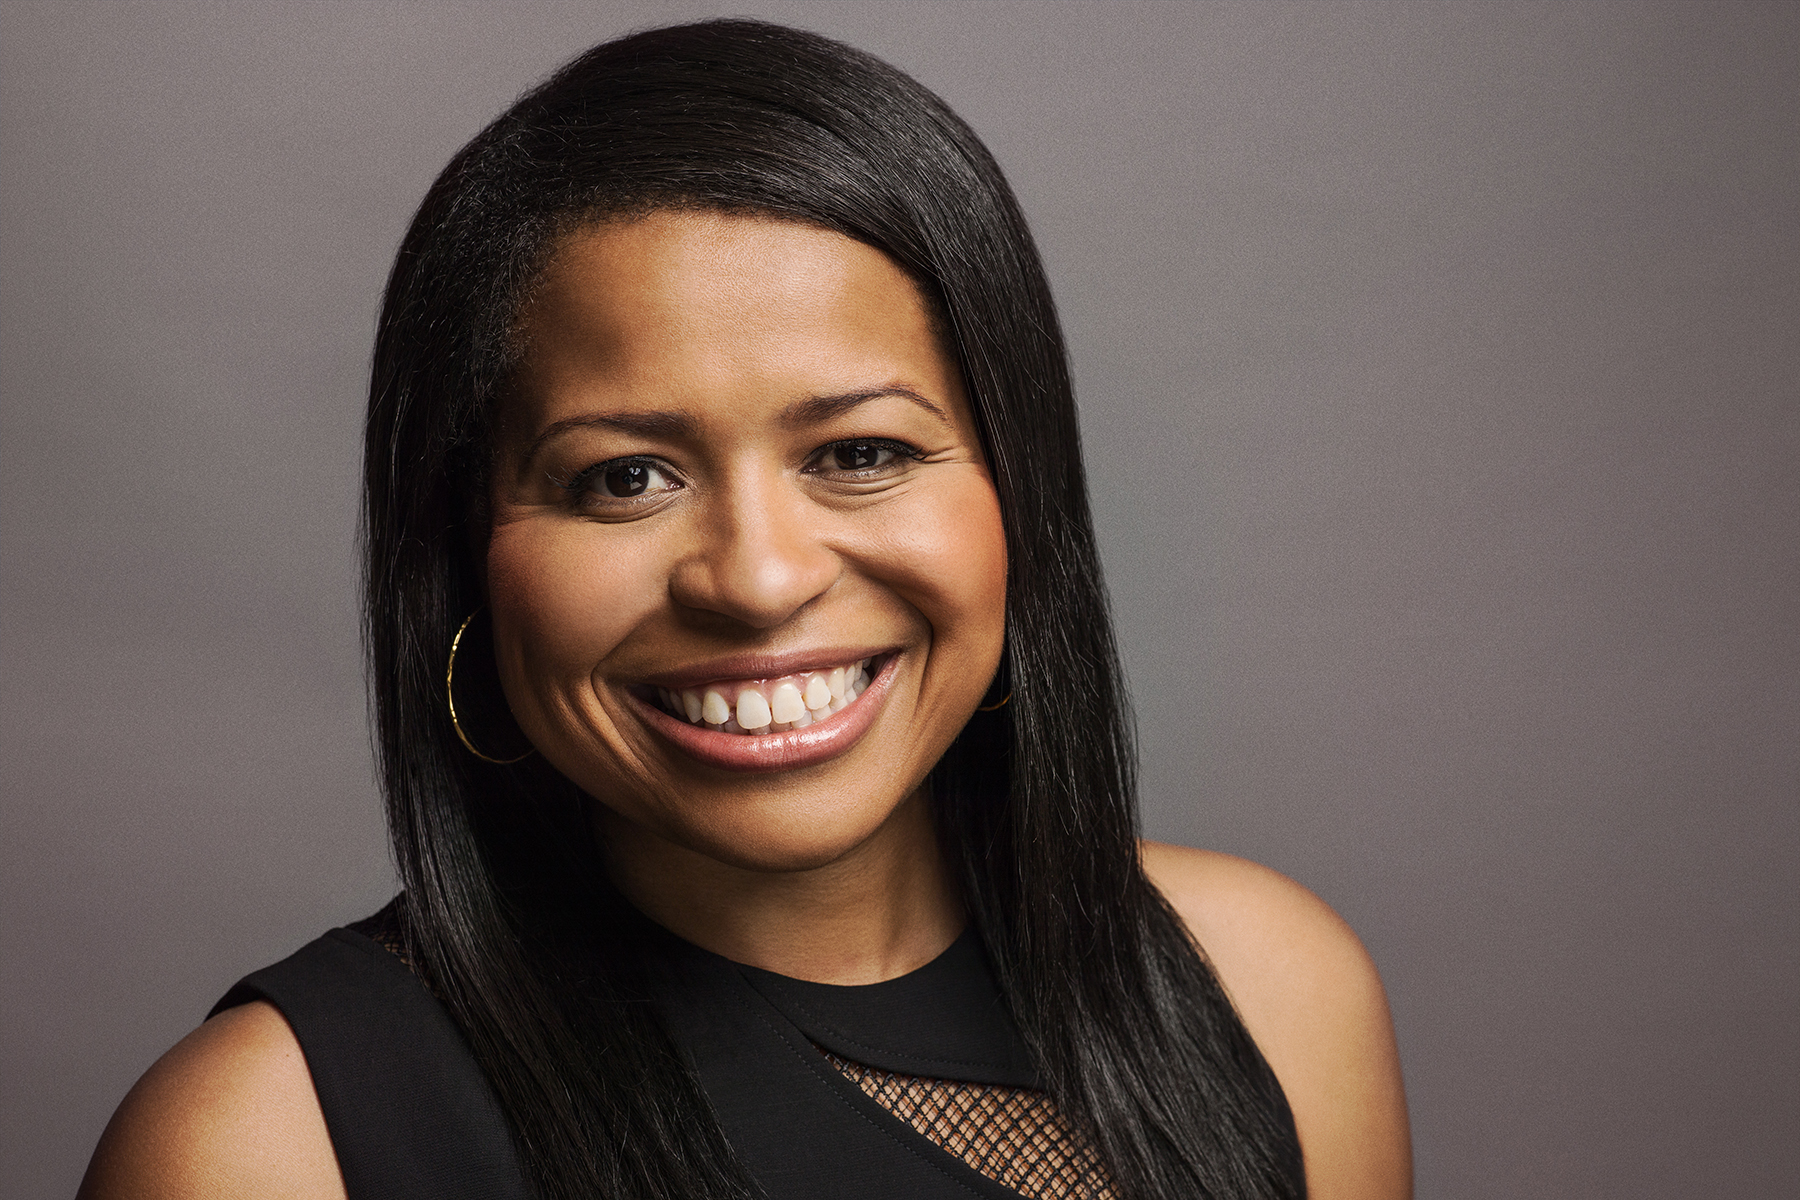 Game Changer: Television Producer Courtney Kemp